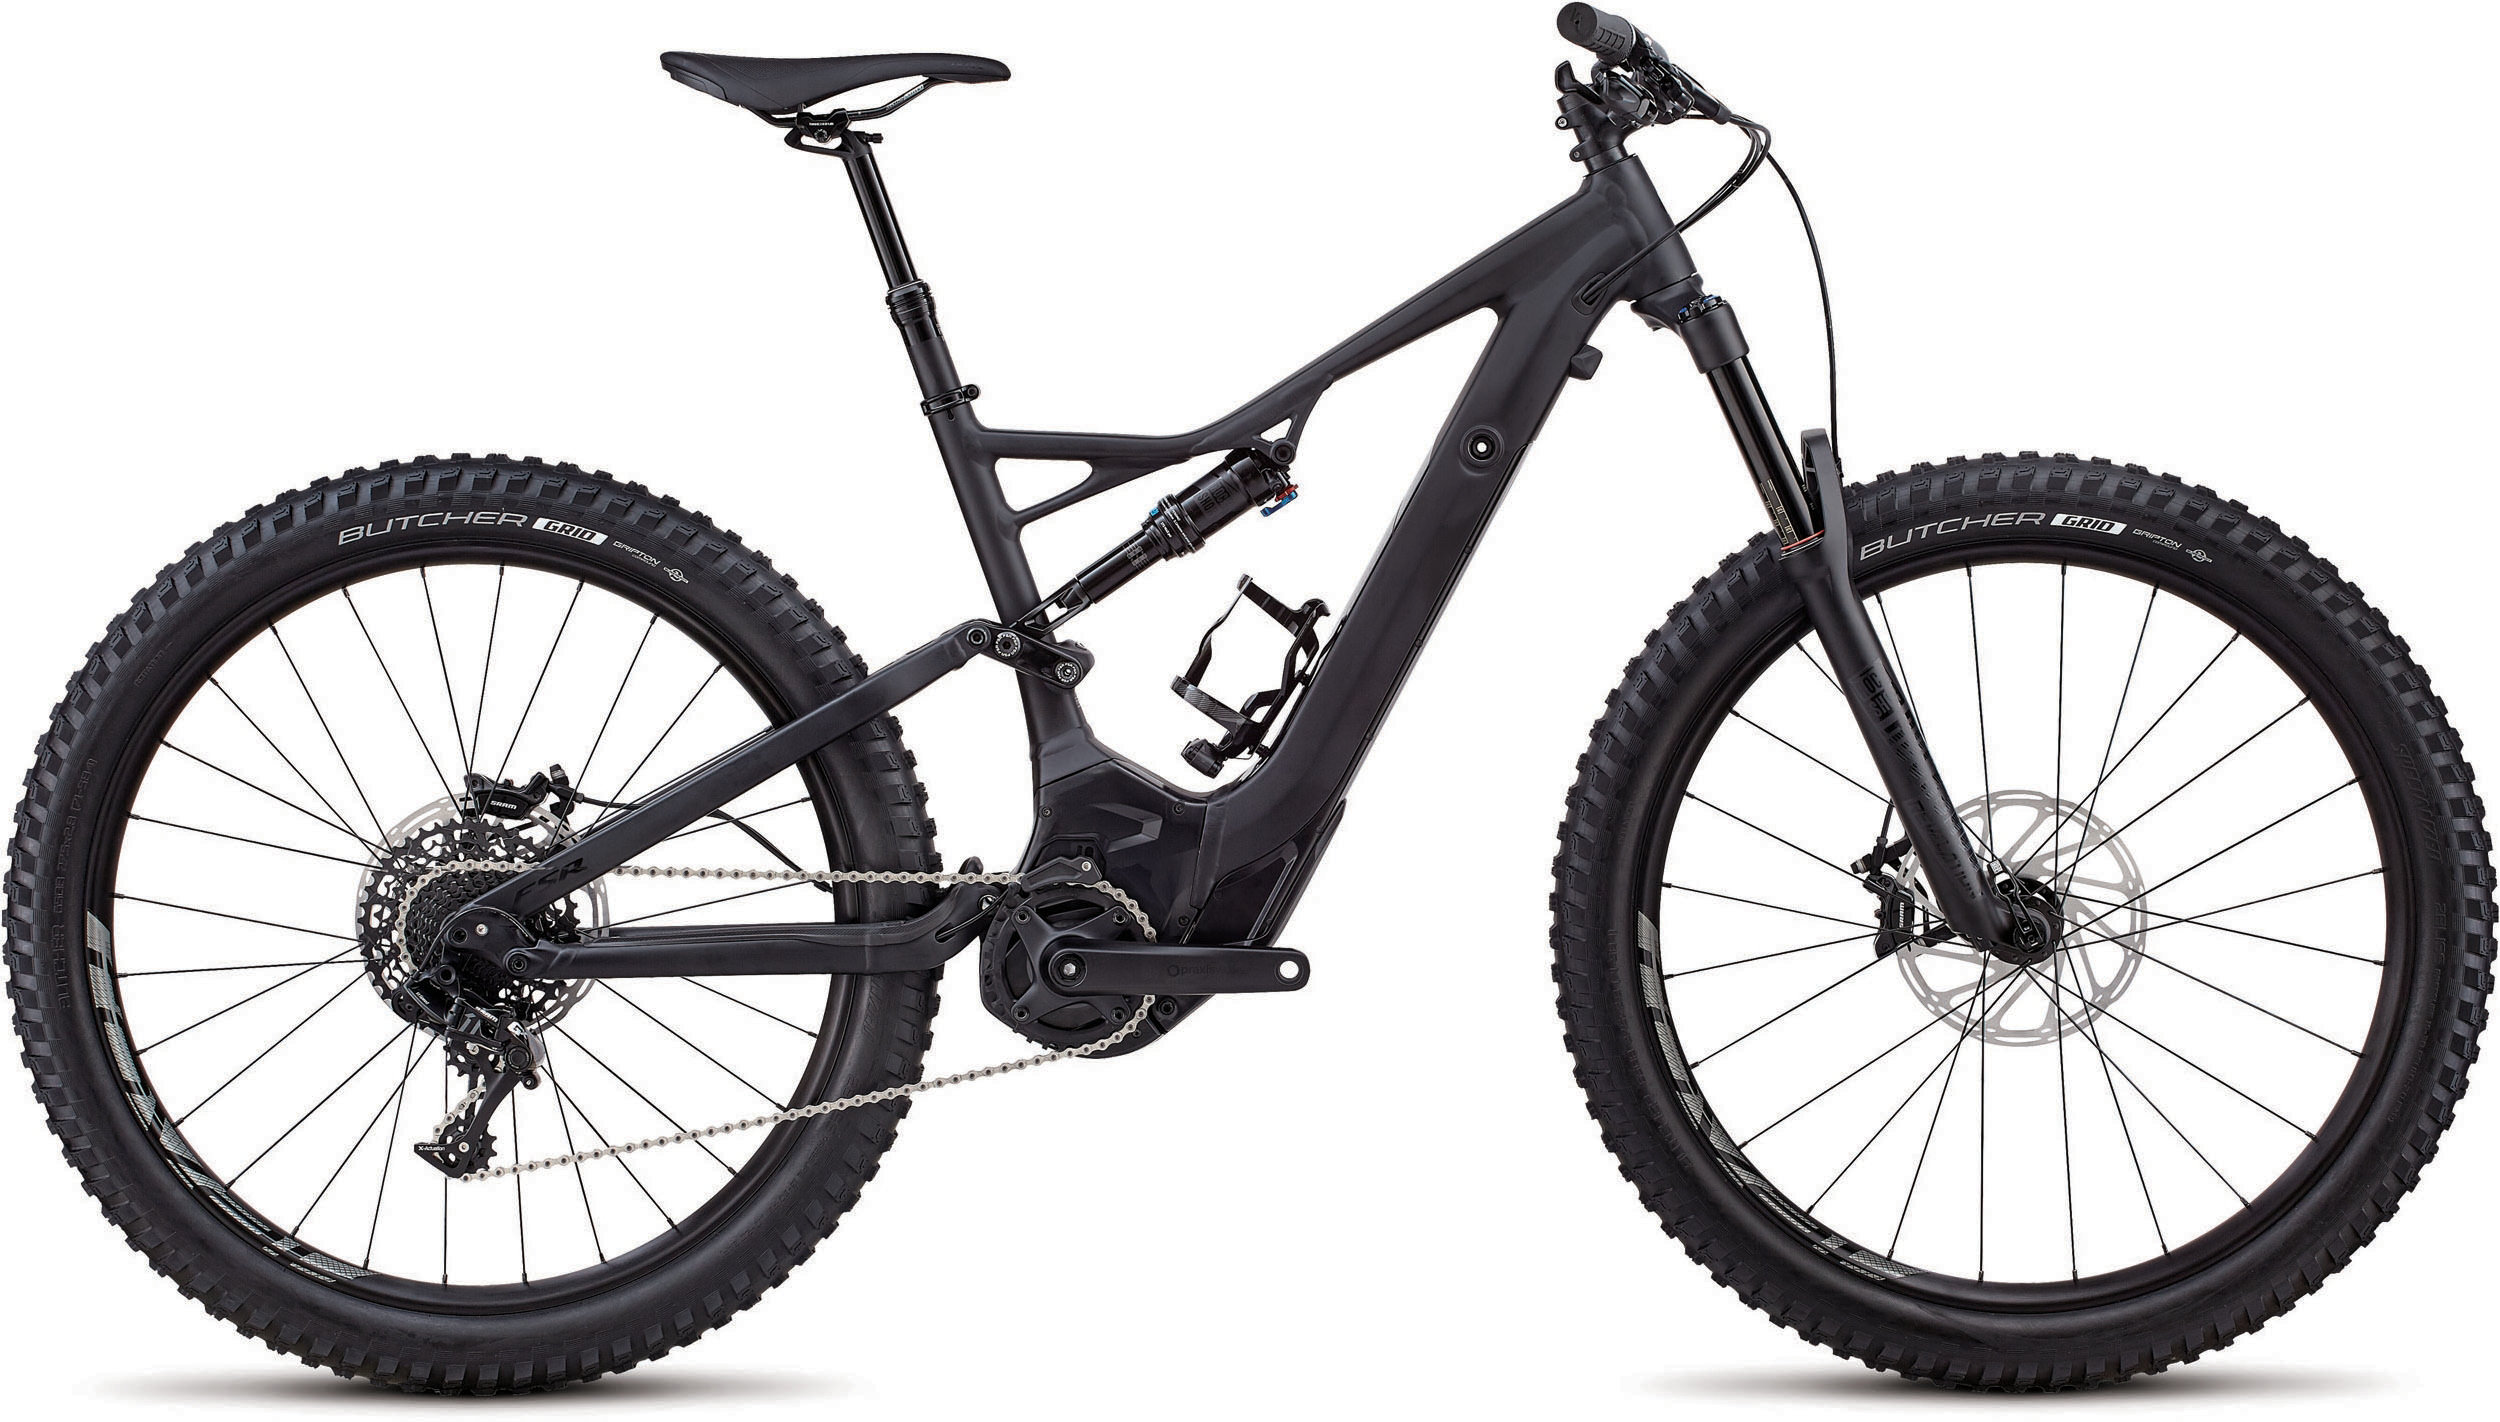 Specialized Men´s Turbo Levo FSR Comp 6Fattie/29 Gloss Black M - Specialized Men´s Turbo Levo FSR Comp 6Fattie/29 Gloss Black M